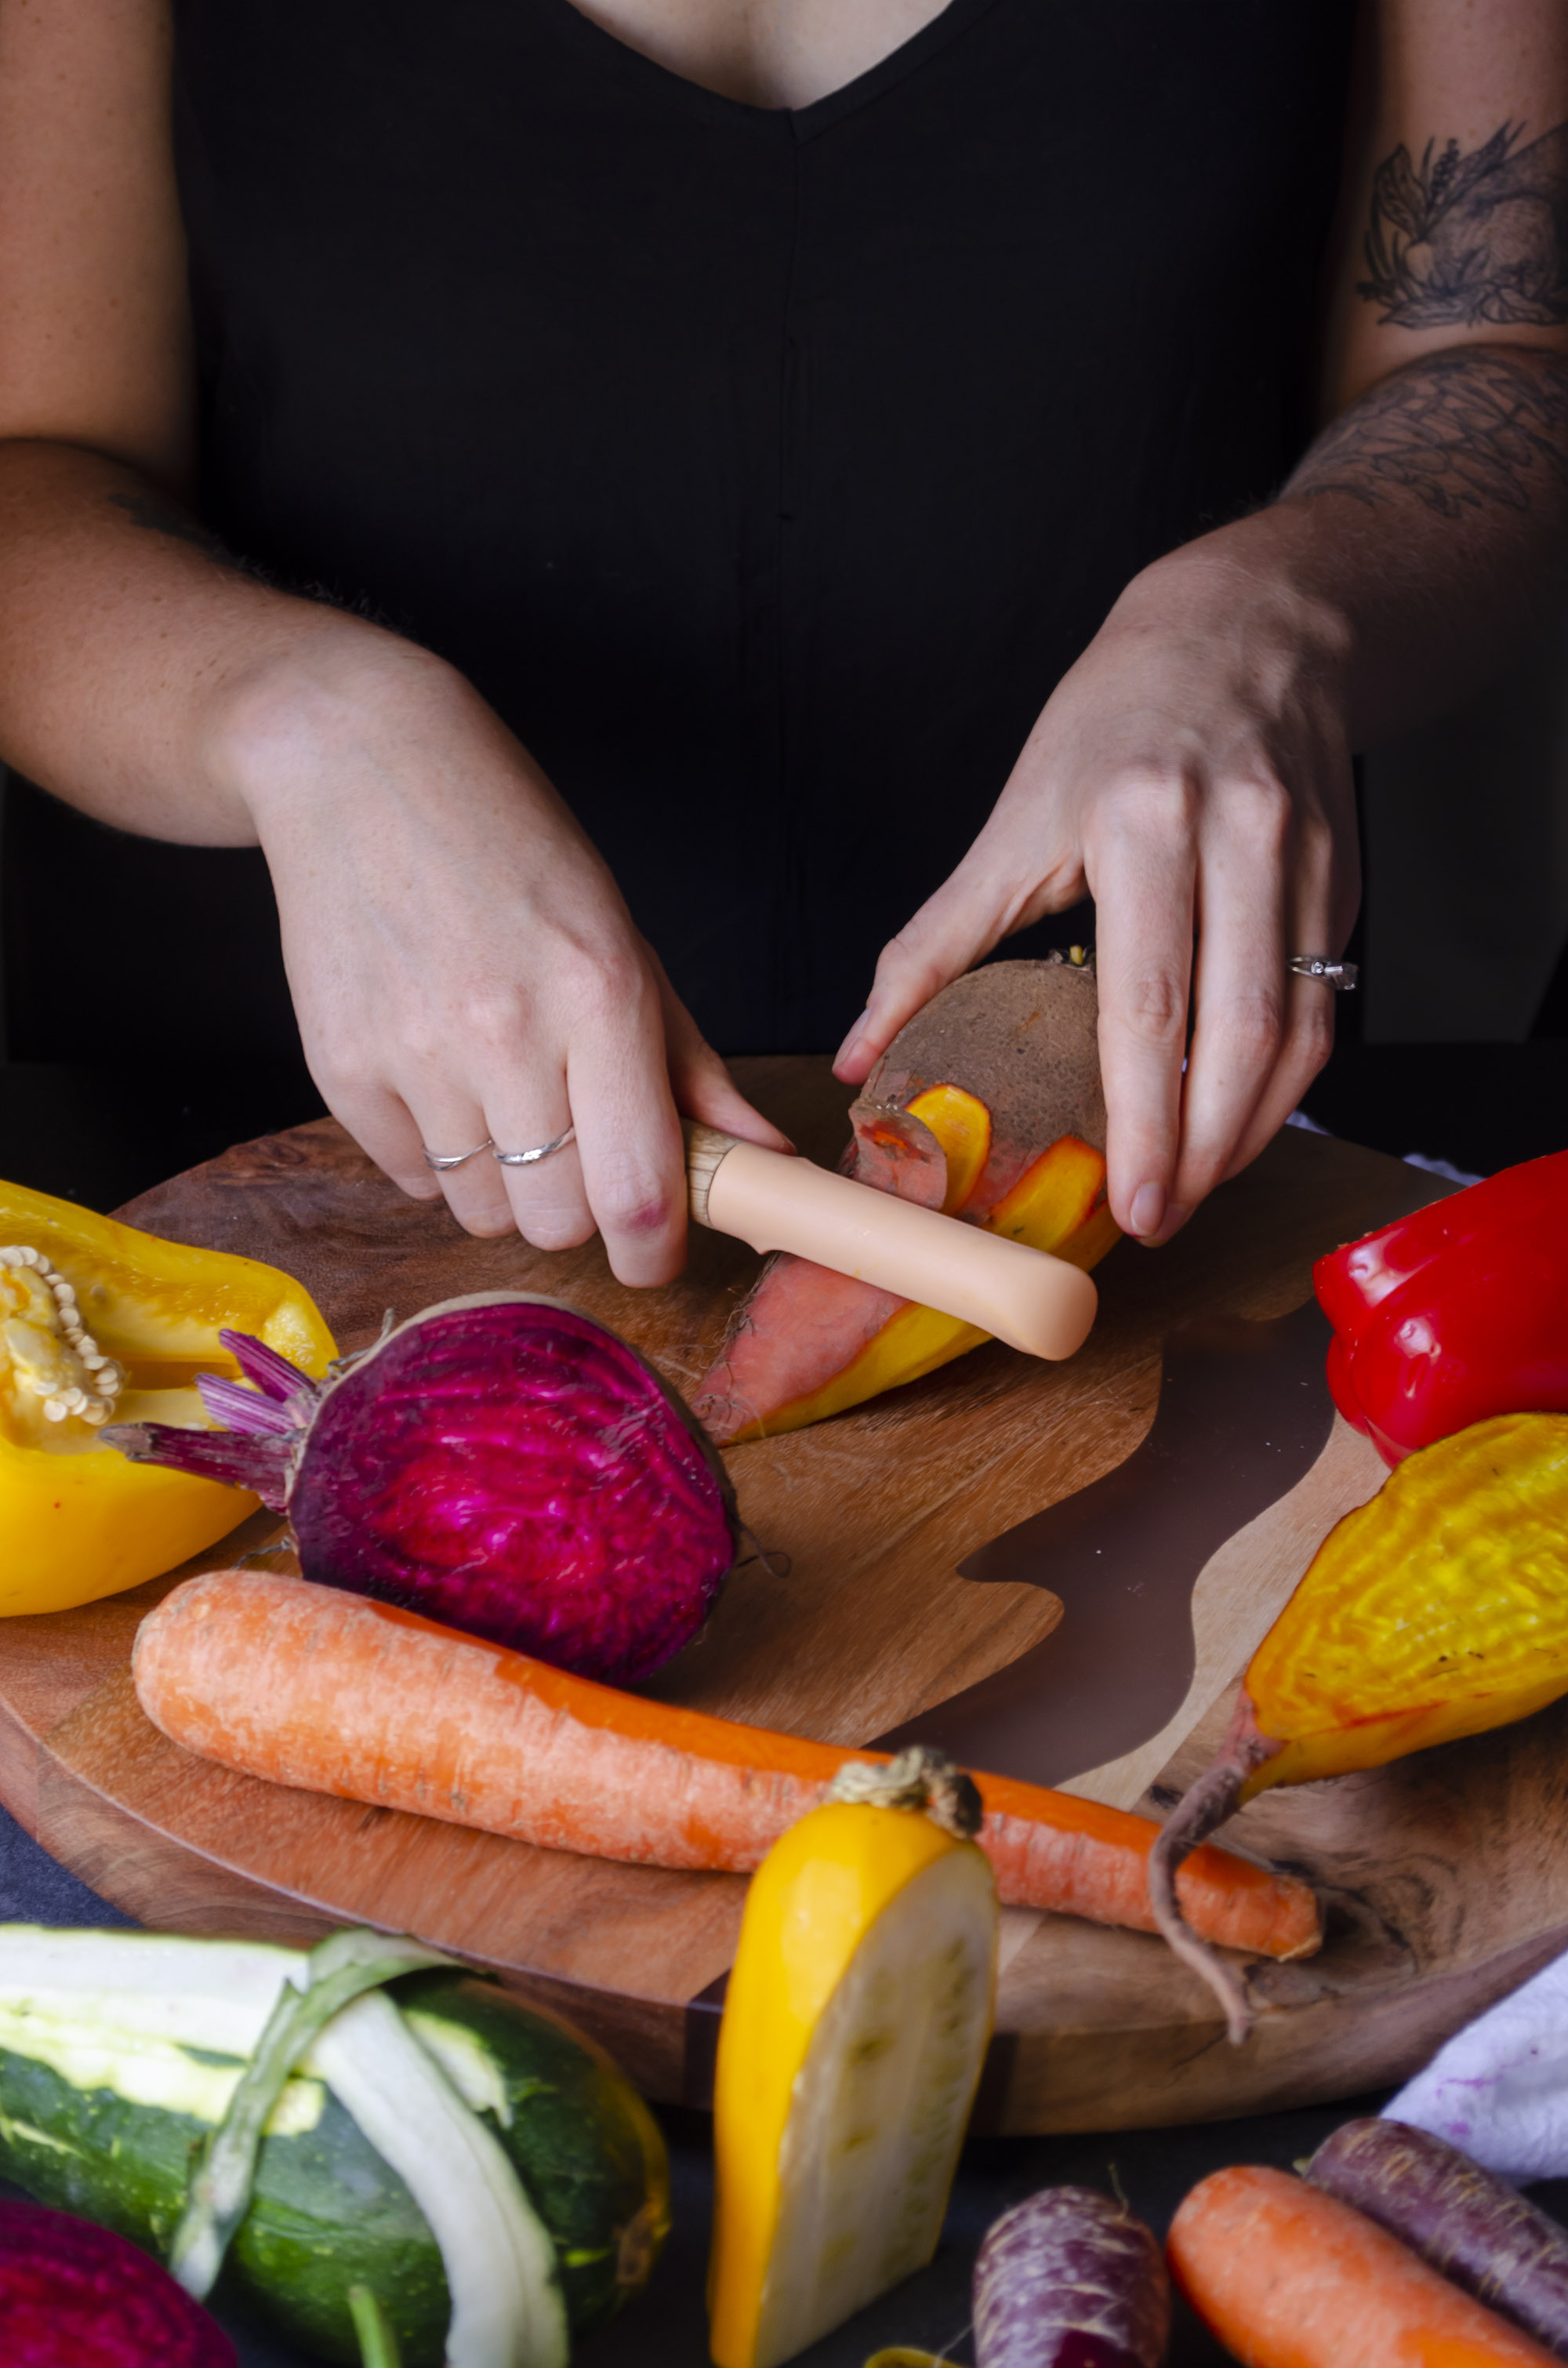 Hands peeling carrots and other vegetables.